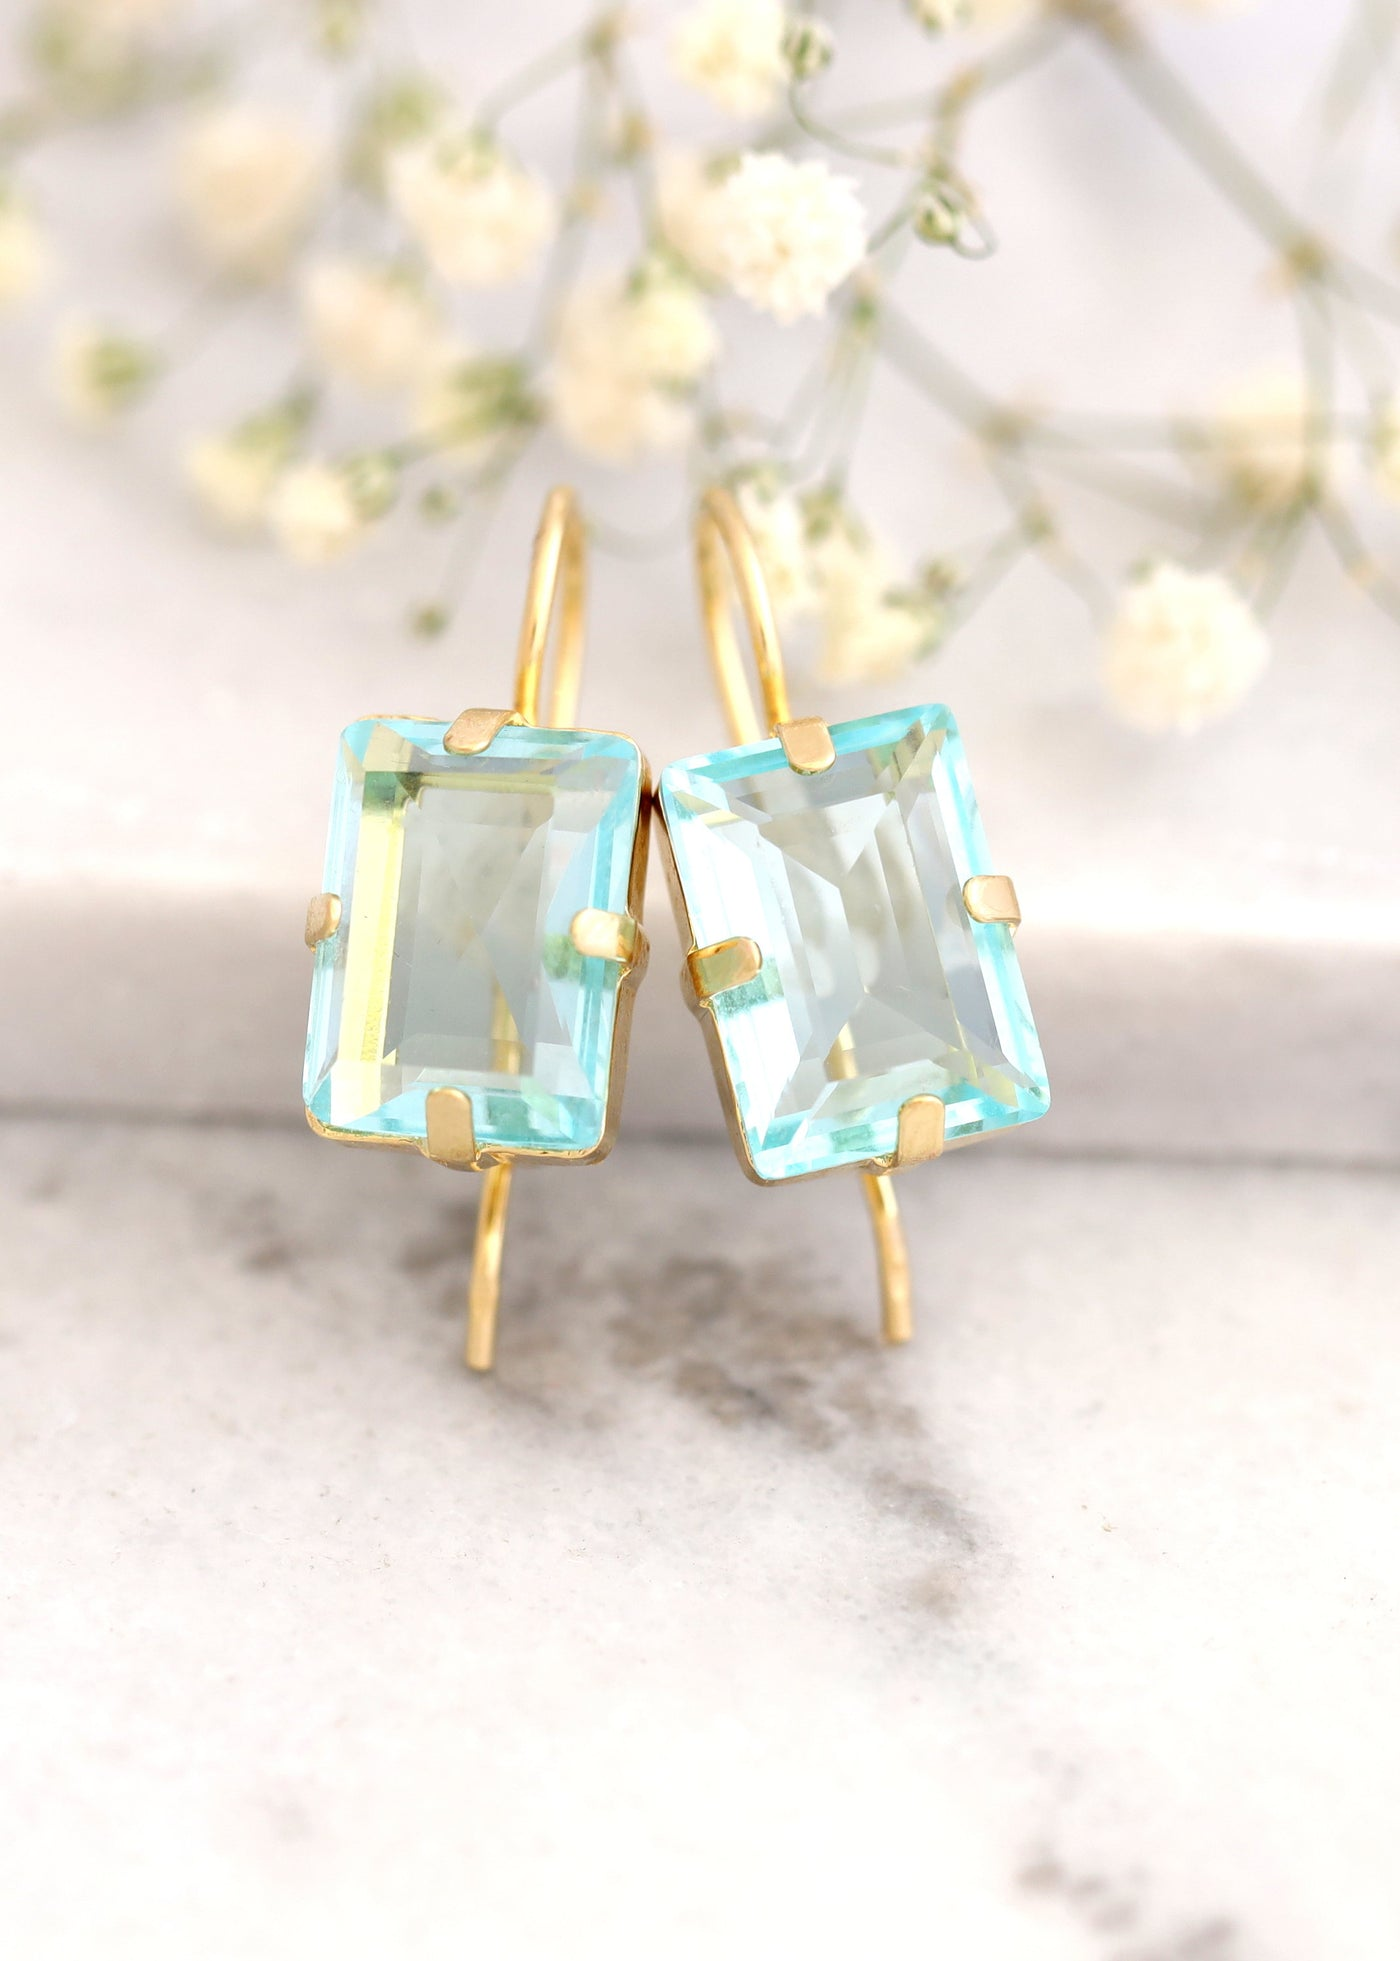 Aquamarine Earrings, Aquamarine Drop Earrings, Bridal Blue Drop Earrings, Emerald cut Crystal Earrings, Bridesmaids Earrings, Gift For Her